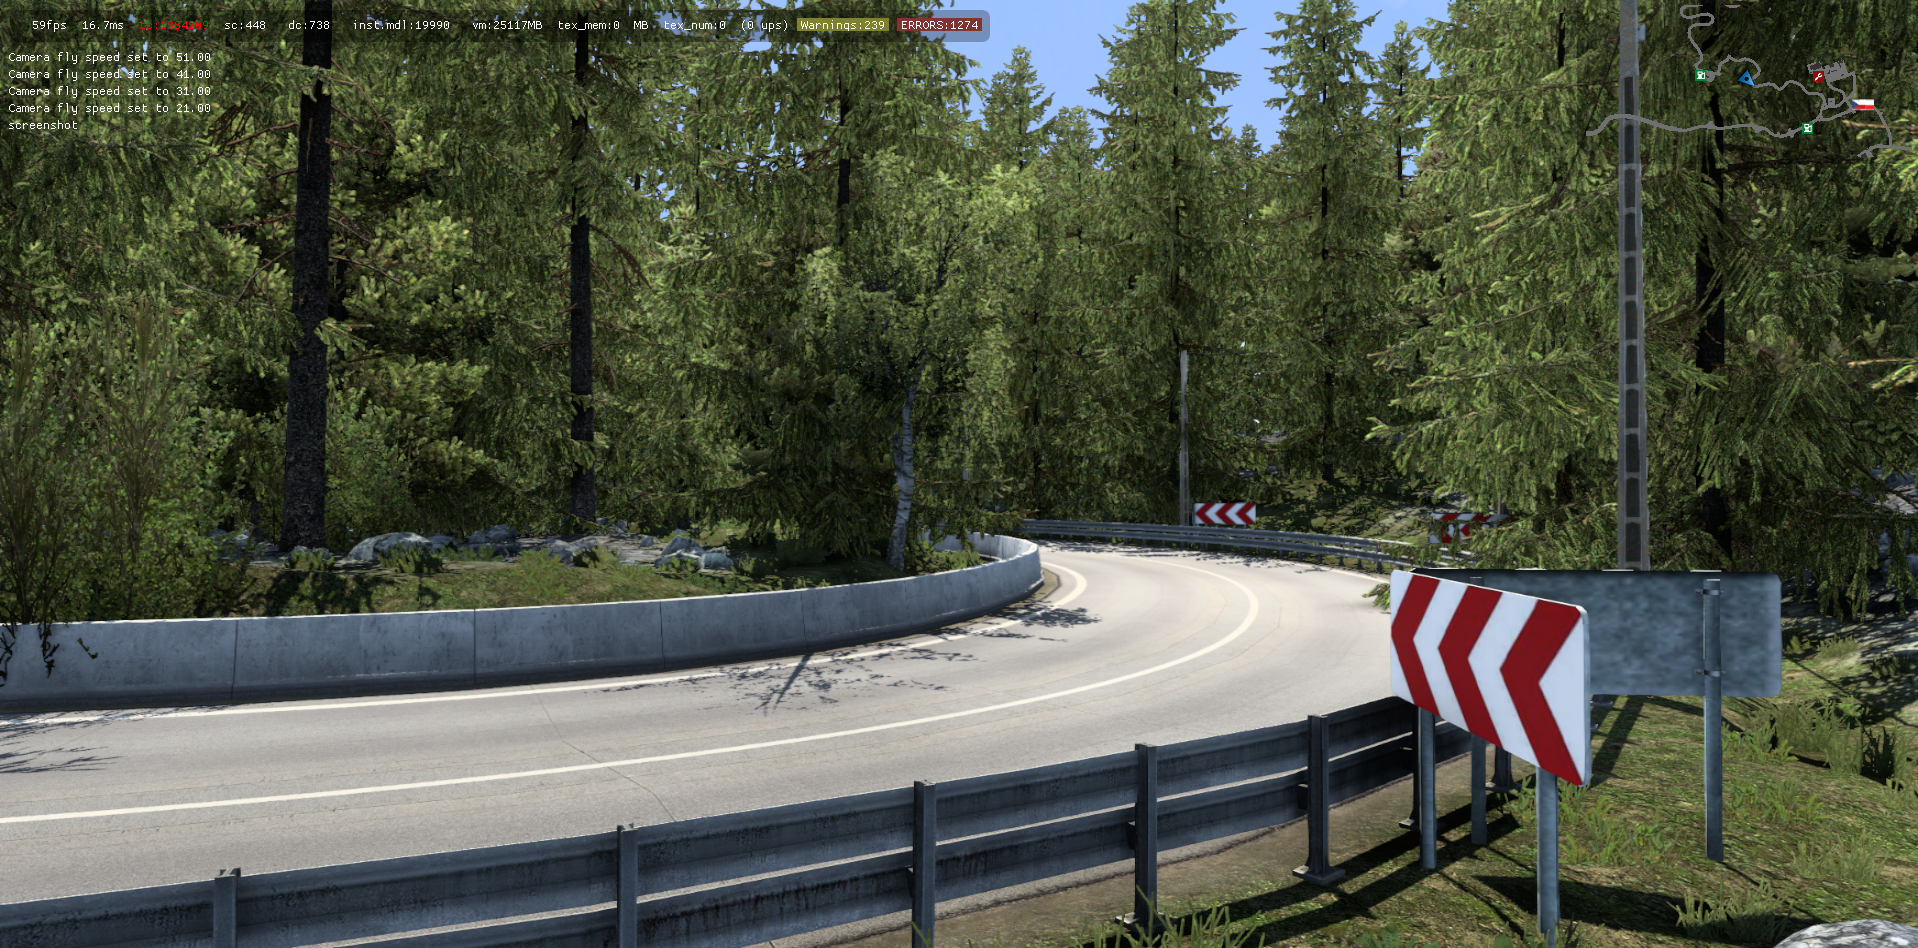 ets2_20210921_212325_00.png